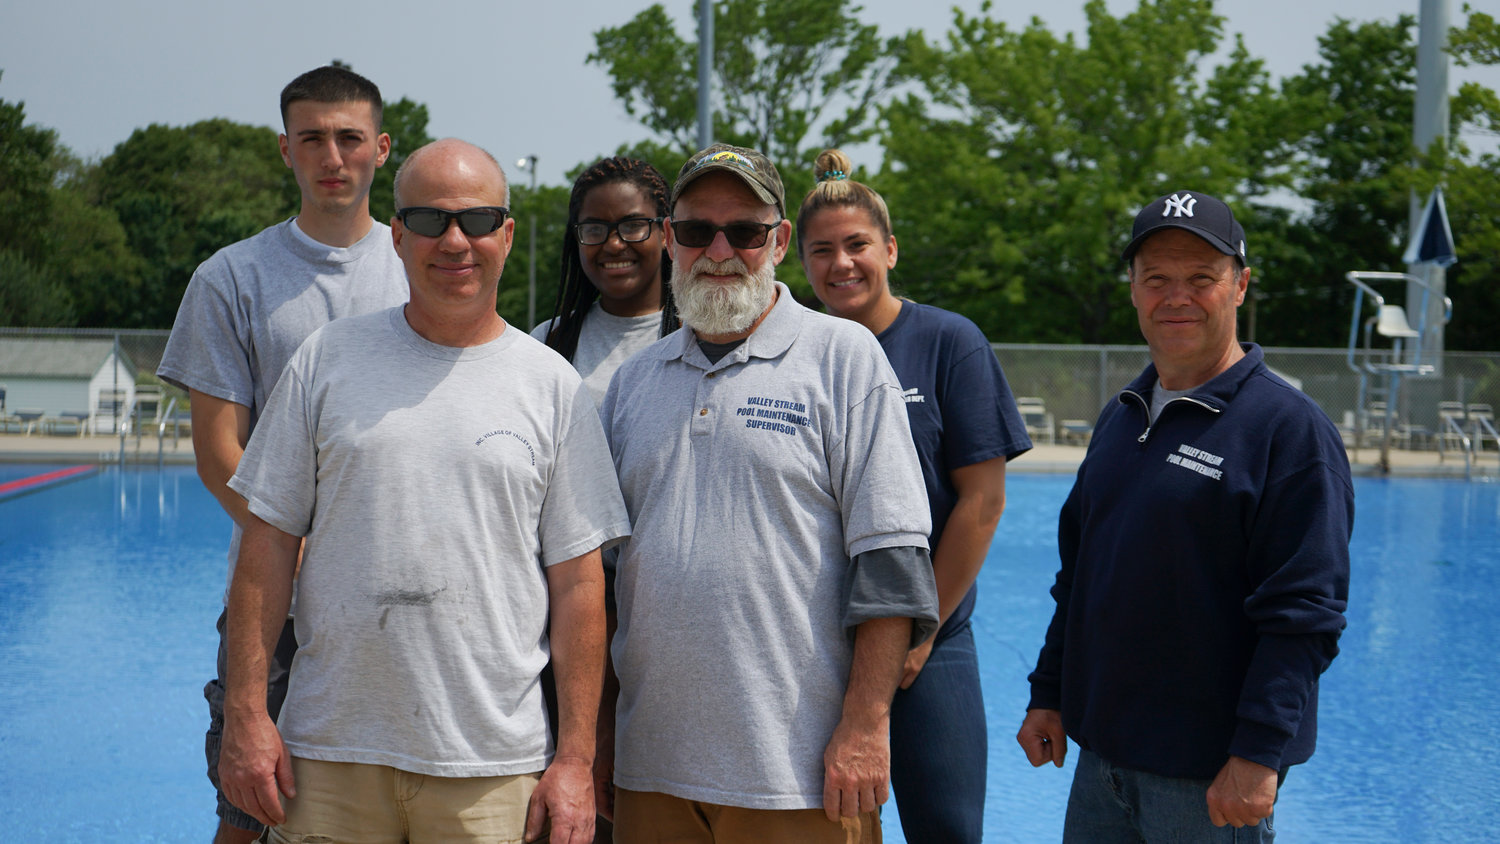 Pool Maintenance Supervisor Rich DeAngelis, center, with his staff, Frank Tashman, clockwise from top left, Stacey Charles, Kelliann Dupignac, Eugene Boening and Rob Abrams. Not pictured were staff members Mike Redden, John Lachmeyer, Lou Correa, Tom DeMatties, Annie Fitzgerald